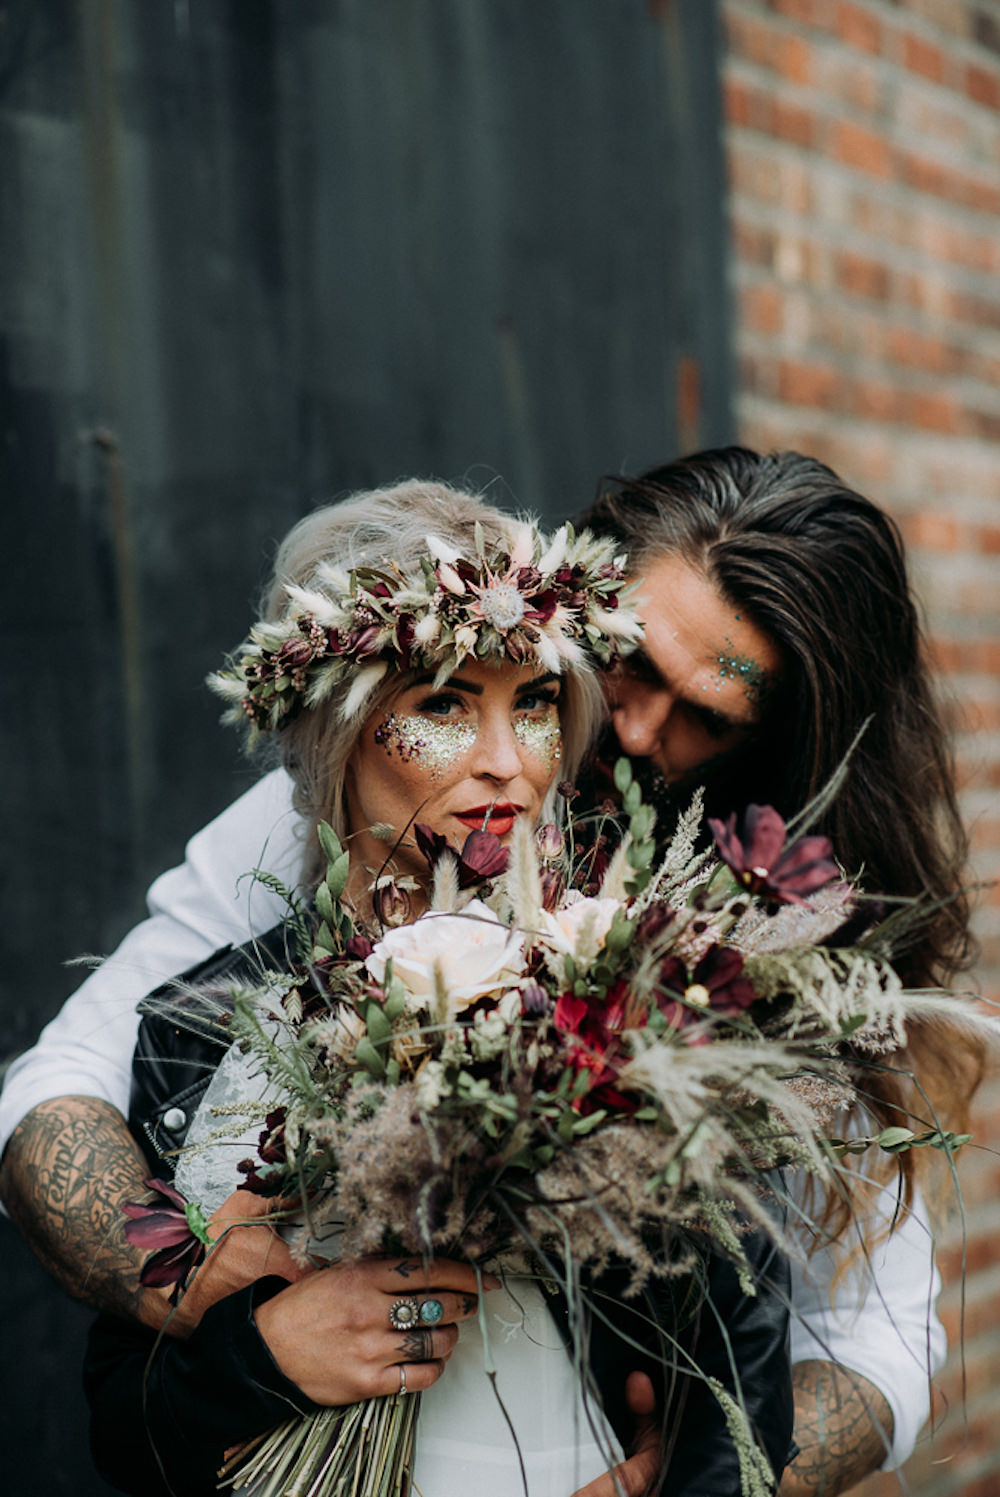 Glitter Make Up Bride Bridal Unconventional Wedding Ideas Pierra G Photography